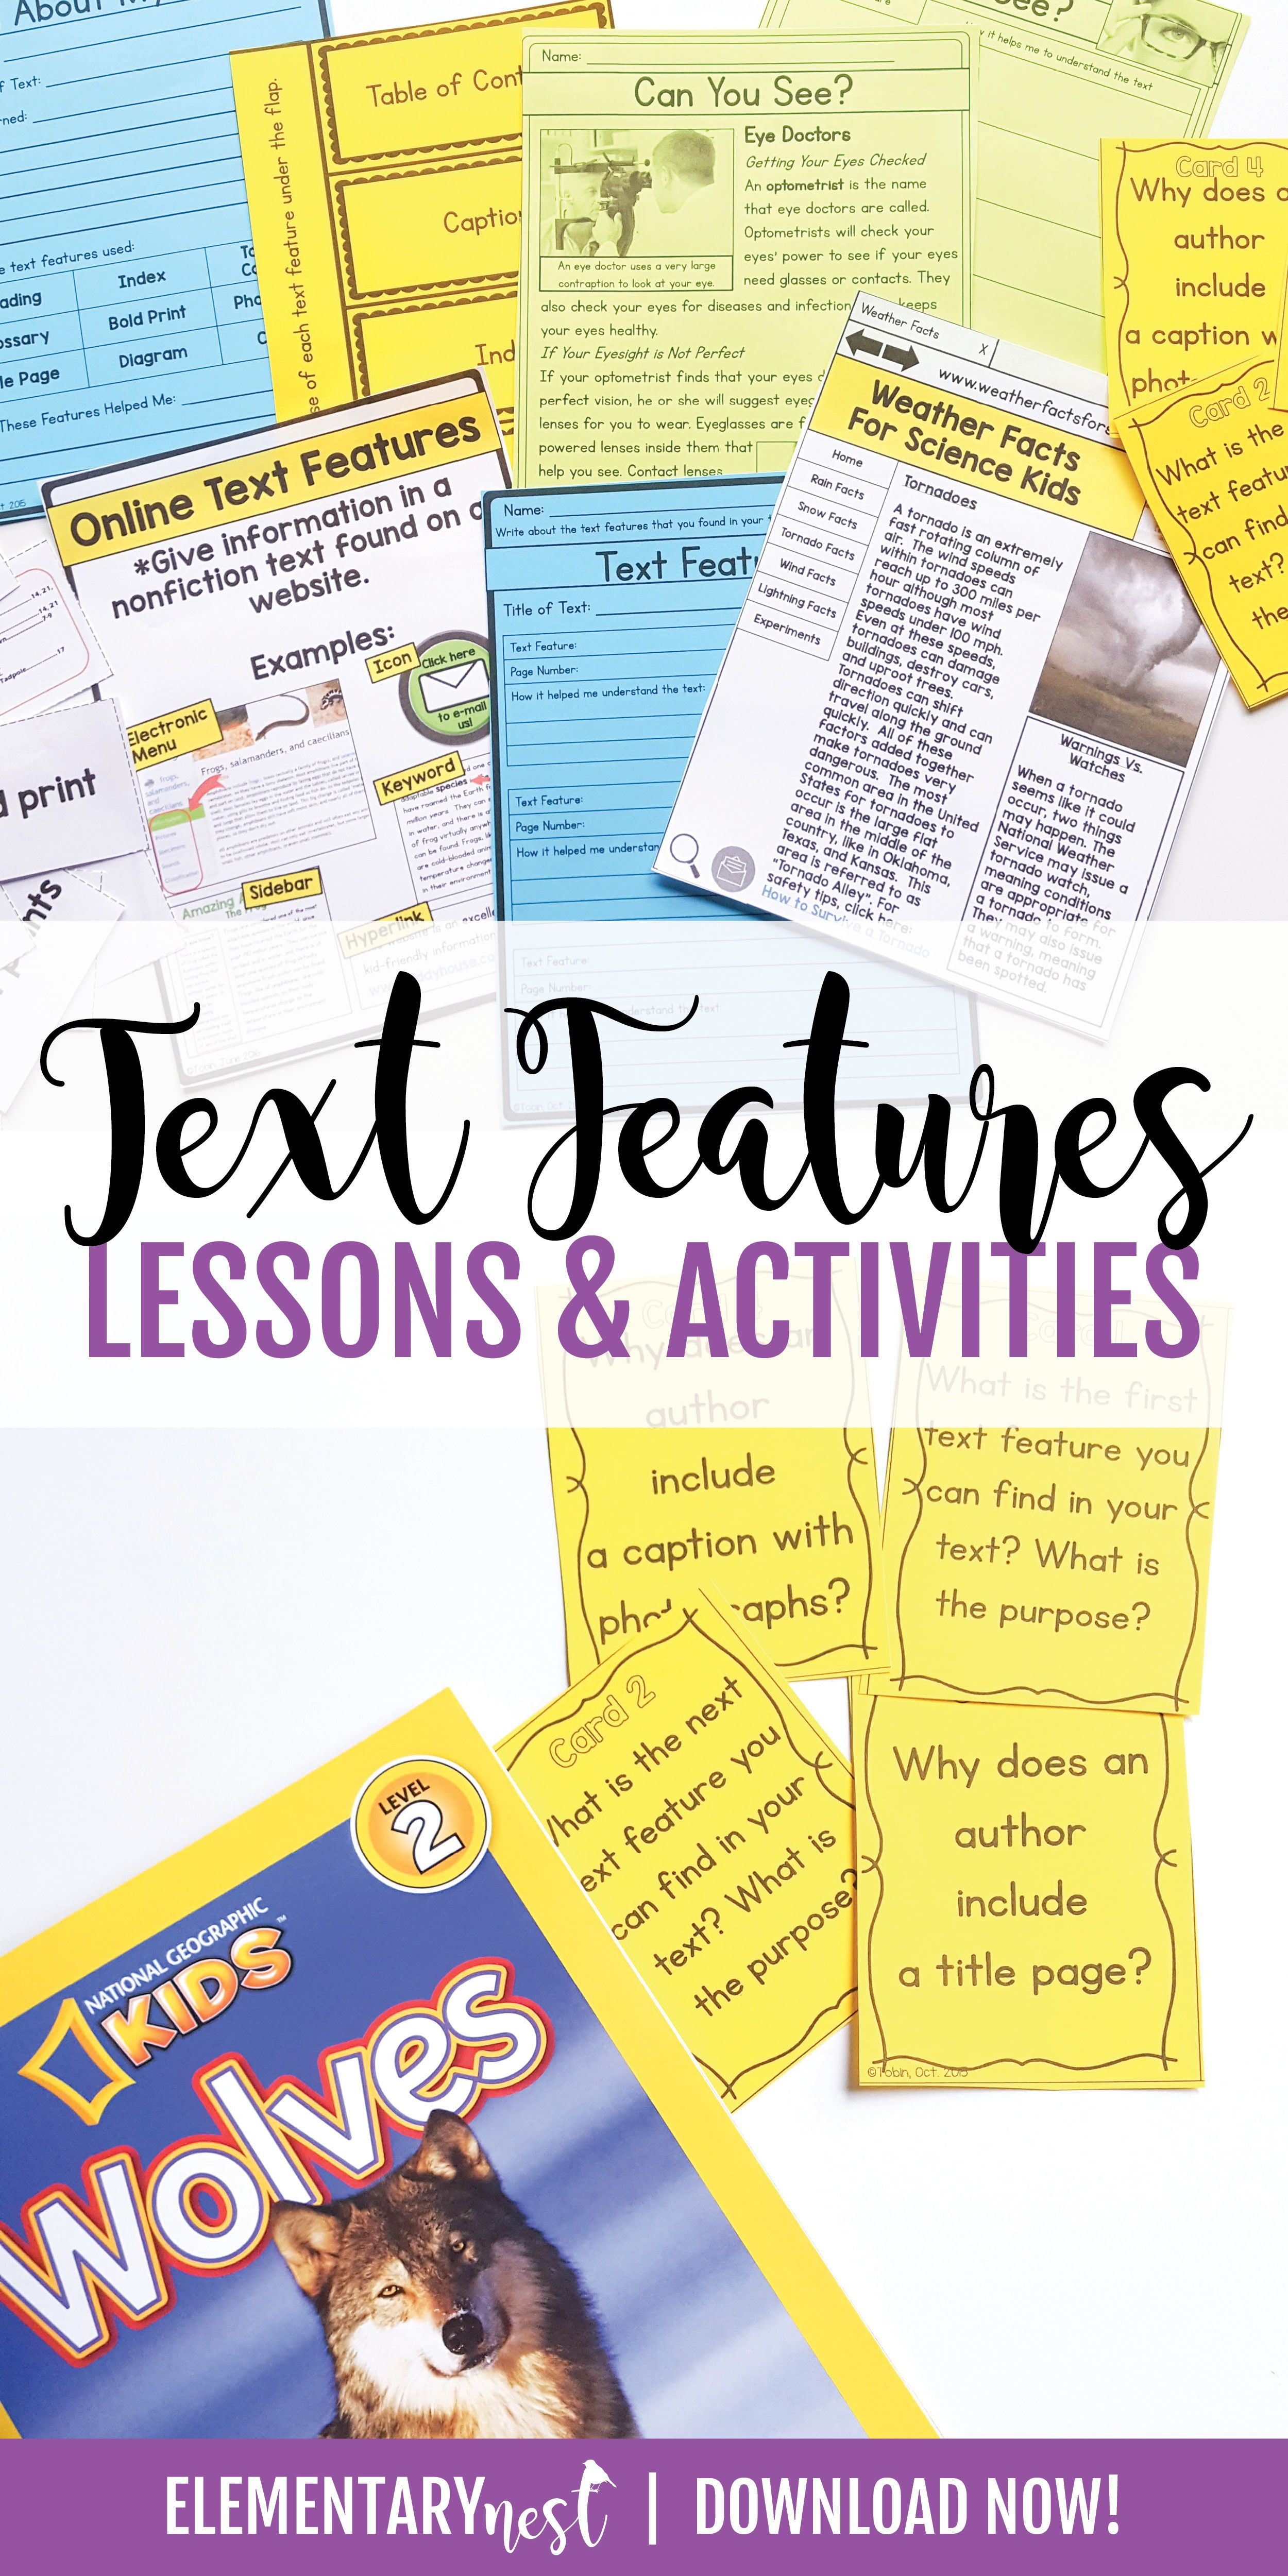 This Pack Is Packed Full Of Ideas And Resources To Use While You Are Teaching The Ccss Standard Nonfiction Text Features Text Features Text Features Activities